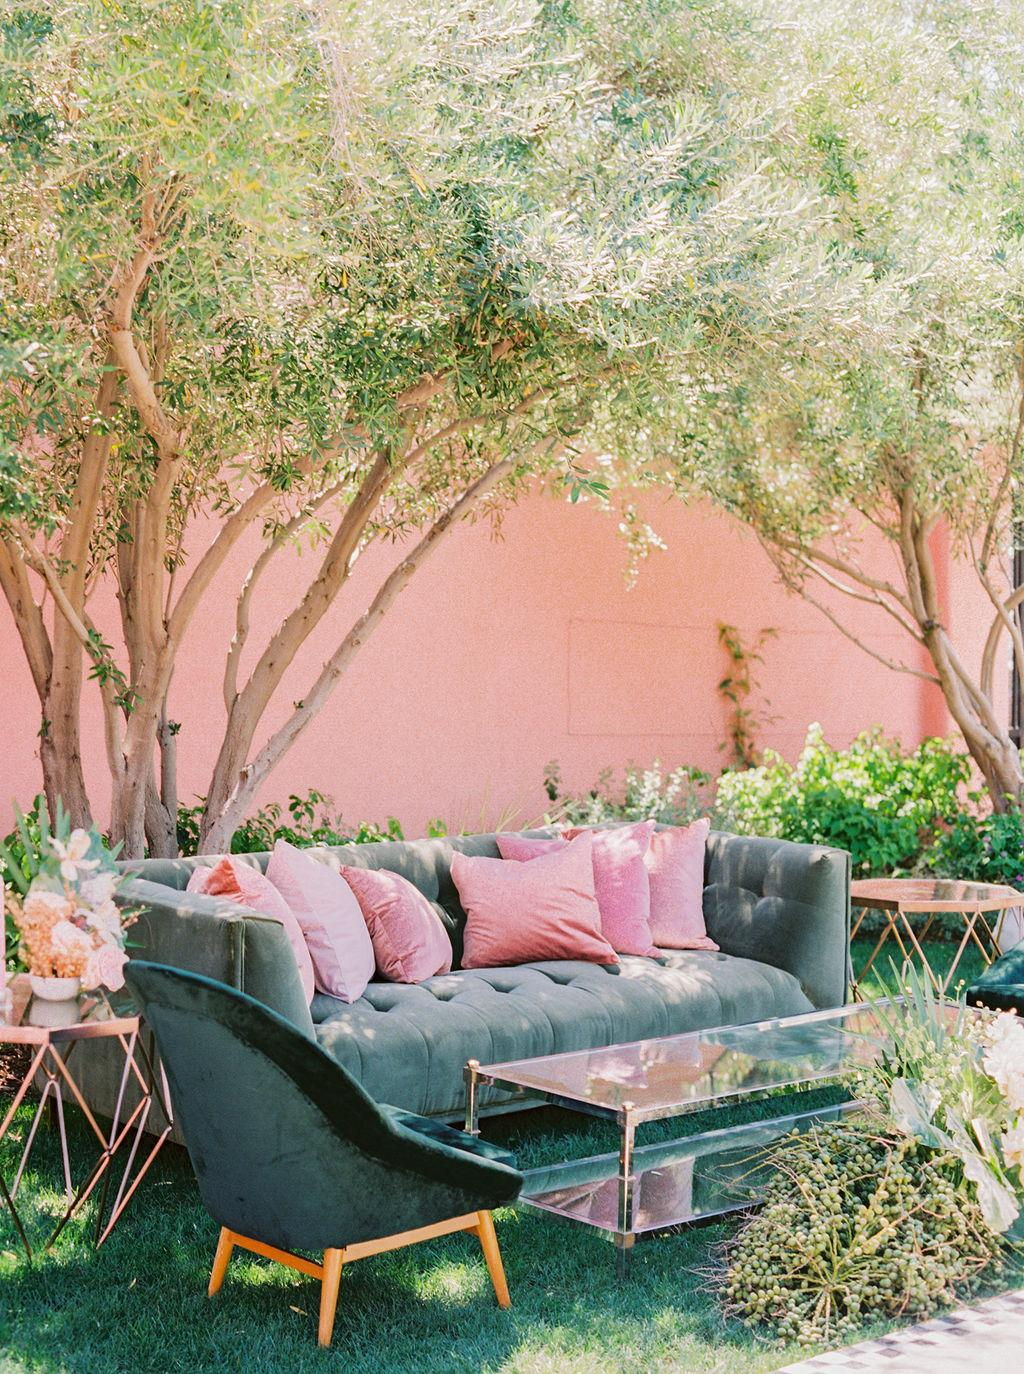 pink pillows and copper wedding cocktail hour furniture https://itgirlweddings.com/styled-shoot-with-pink-tropical-wedding-vibes/